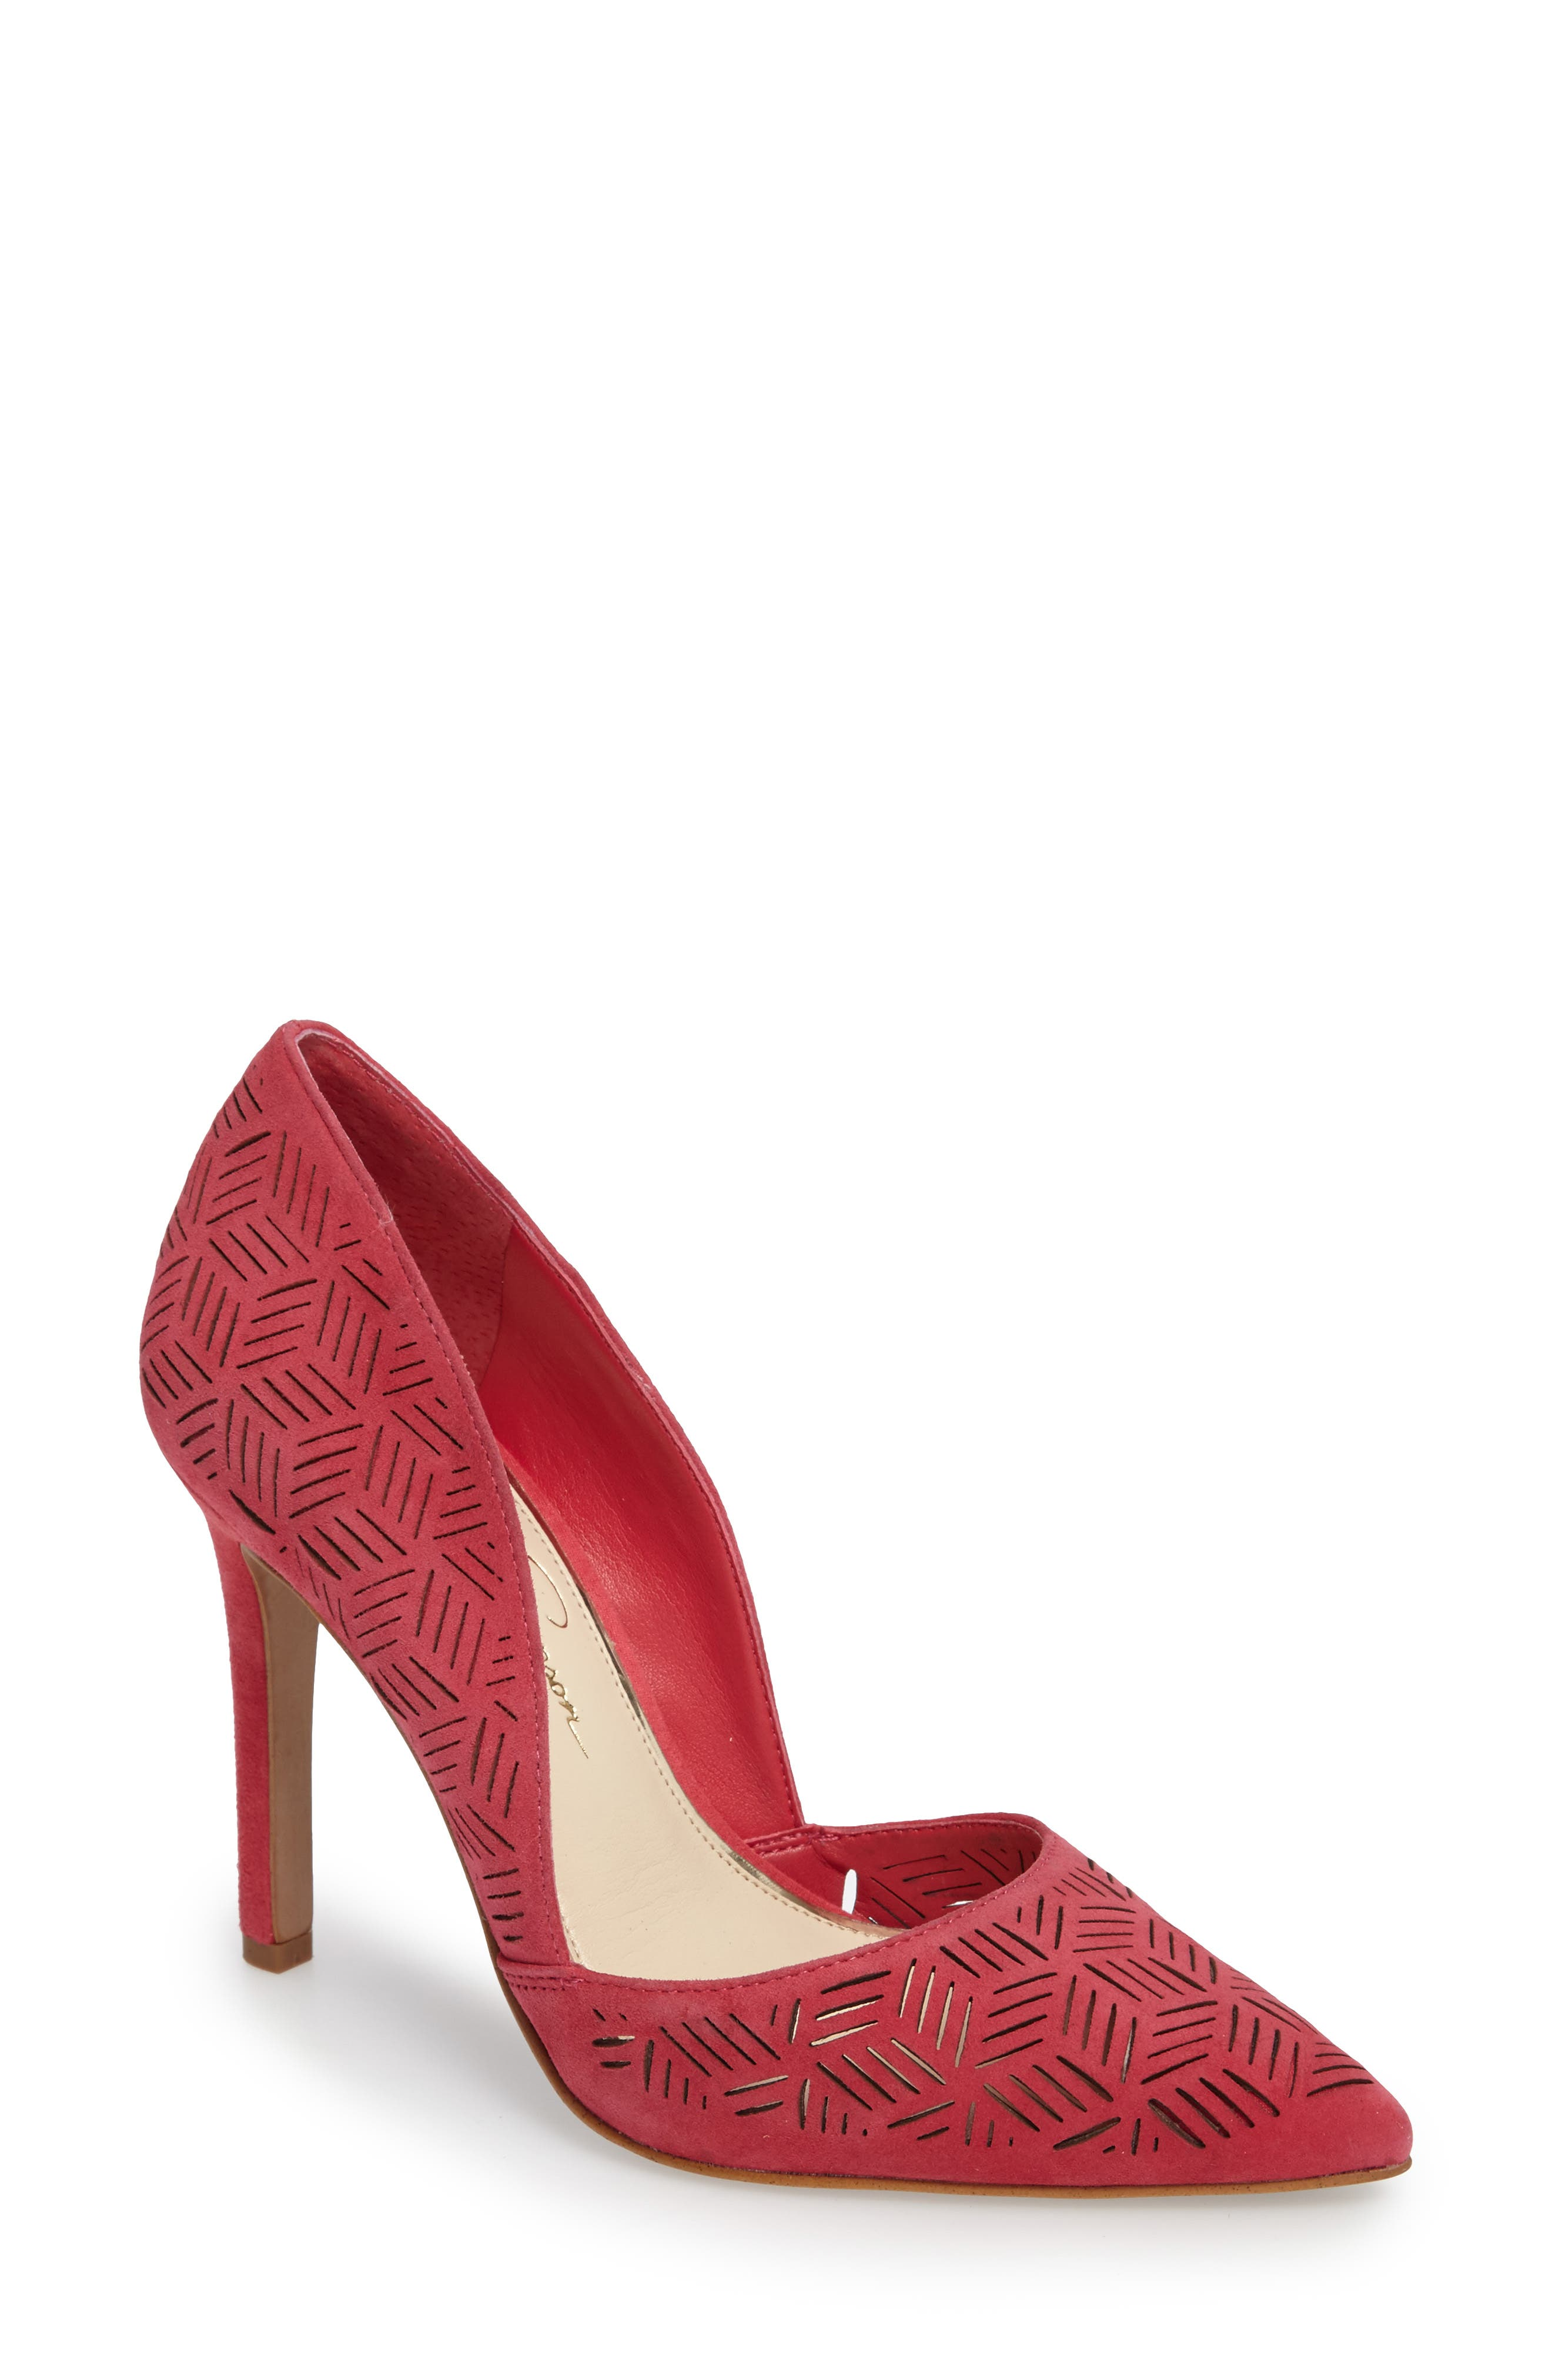 Alternate Image 1 Selected - Jessica Simpson Charie Pointy Toe d'Orsay Pump (Women)